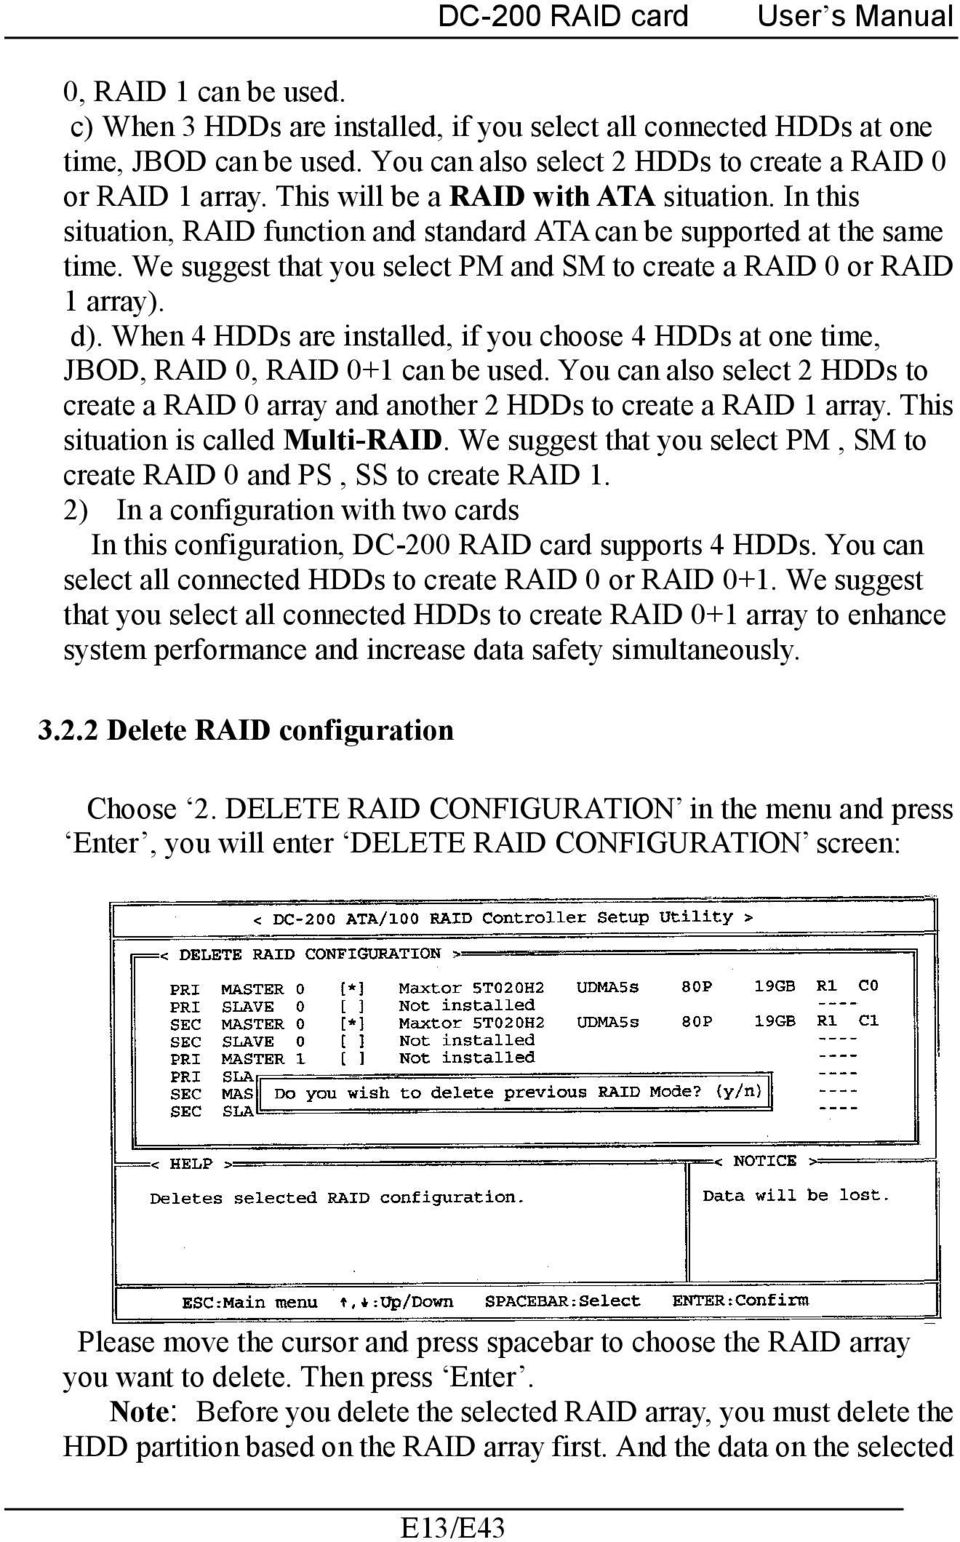 d). When 4 HDDs are installed, if you choose 4 HDDs at one time, JBOD, RAID 0, RAID 0+1 can be used. You can also select 2 HDDs to create a RAID 0 array and another 2 HDDs to create a RAID 1 array.